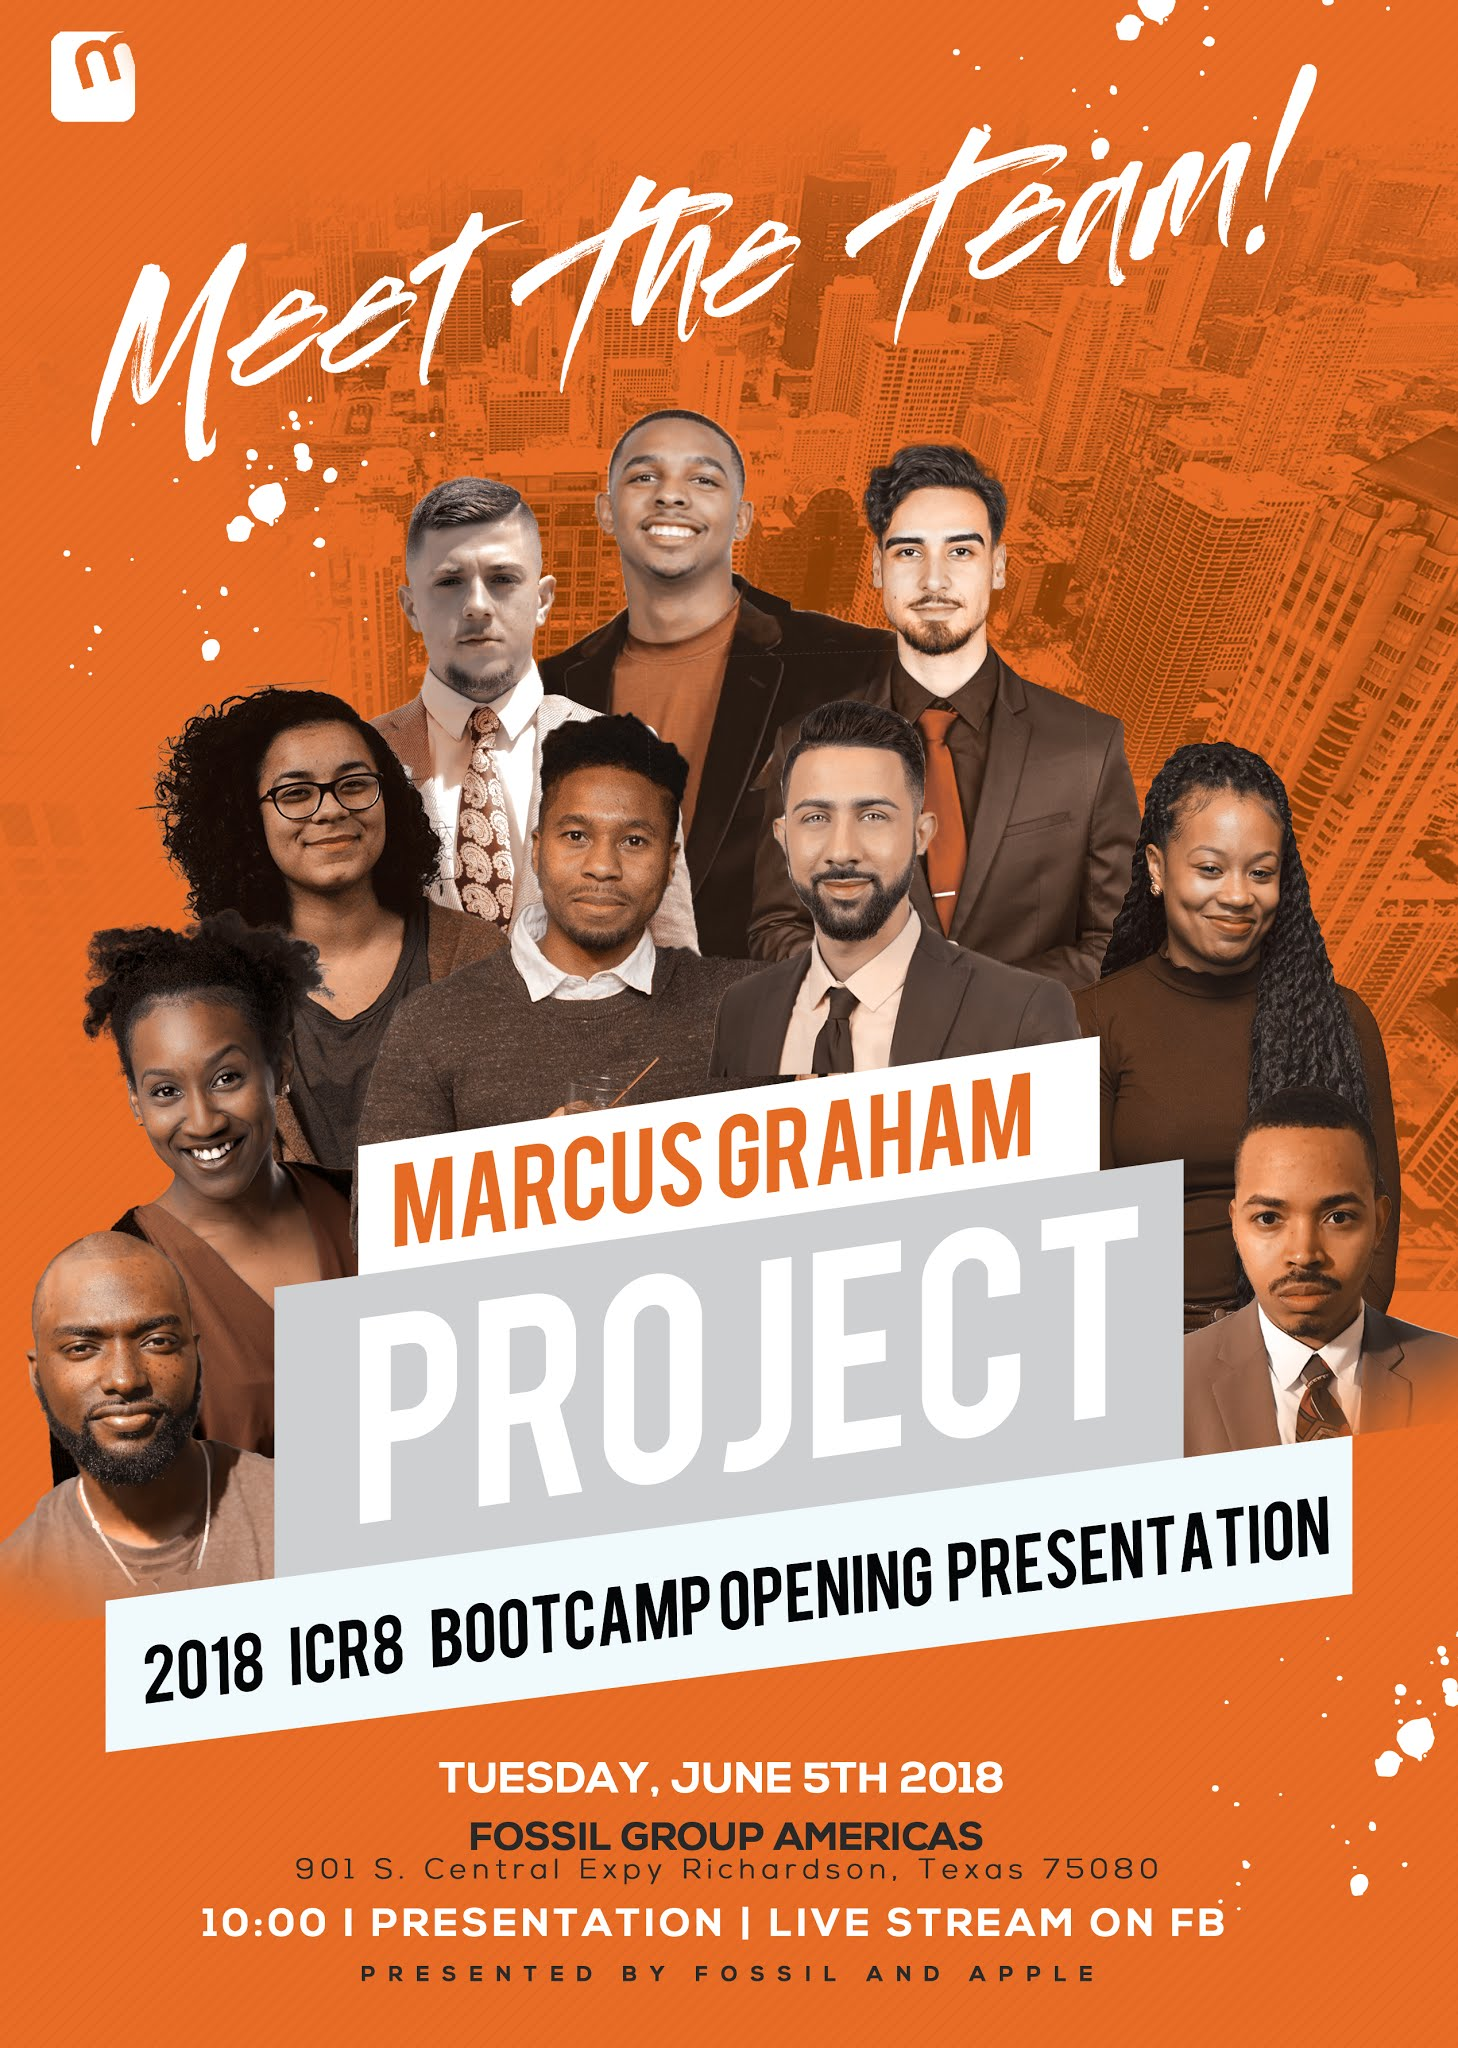 Meet the 2018 icr8 Marcus Graham Project intern class on Tuesday June 5